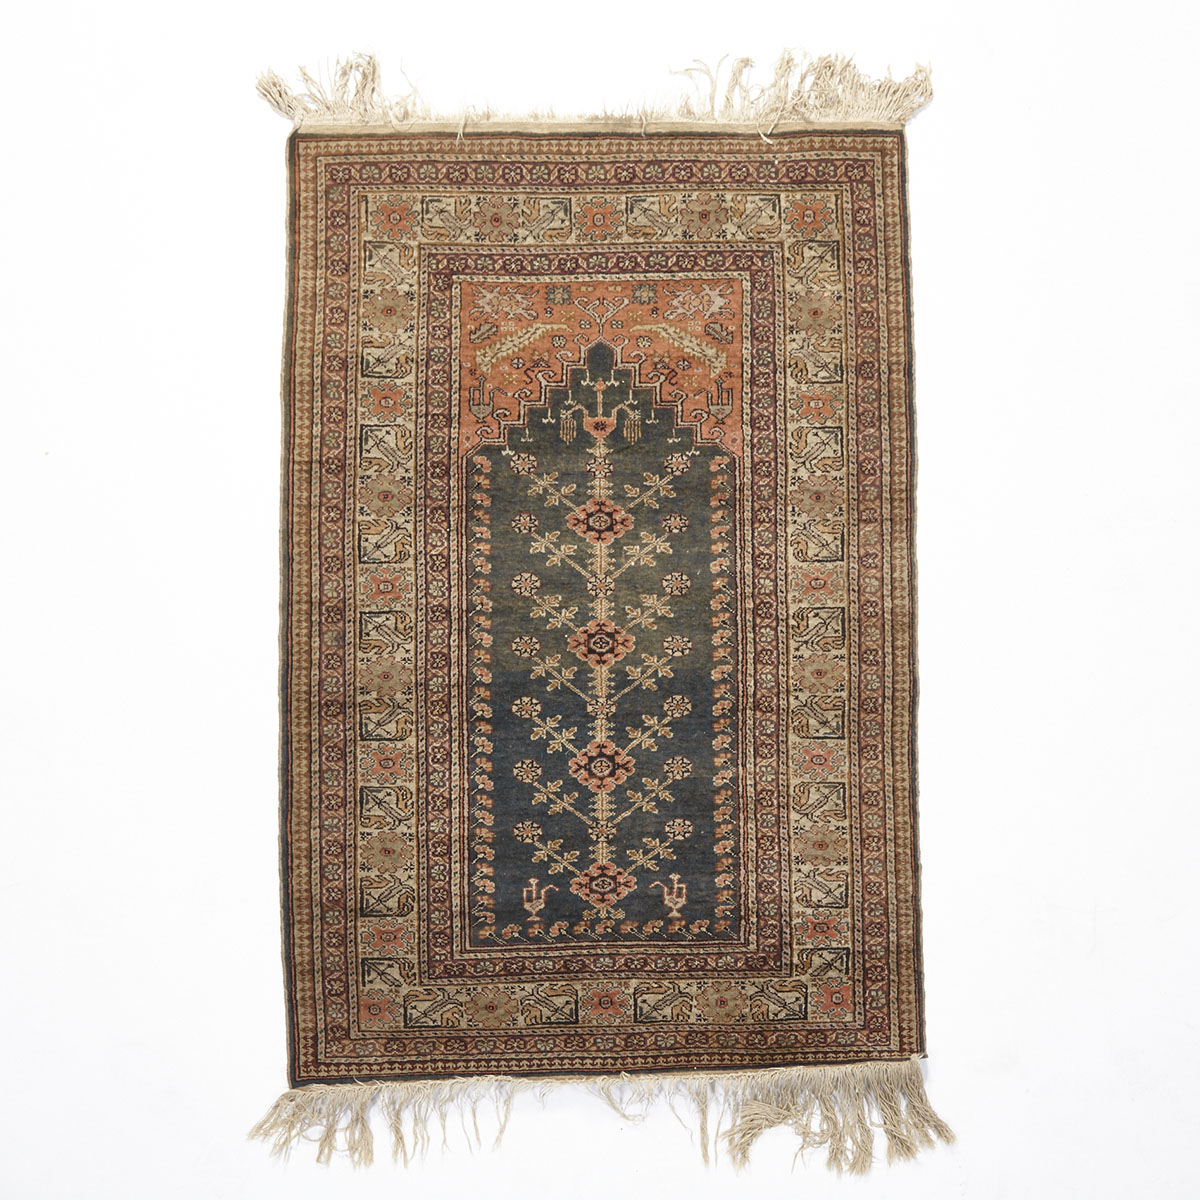 Indian Prayer Design Rug, c.1920